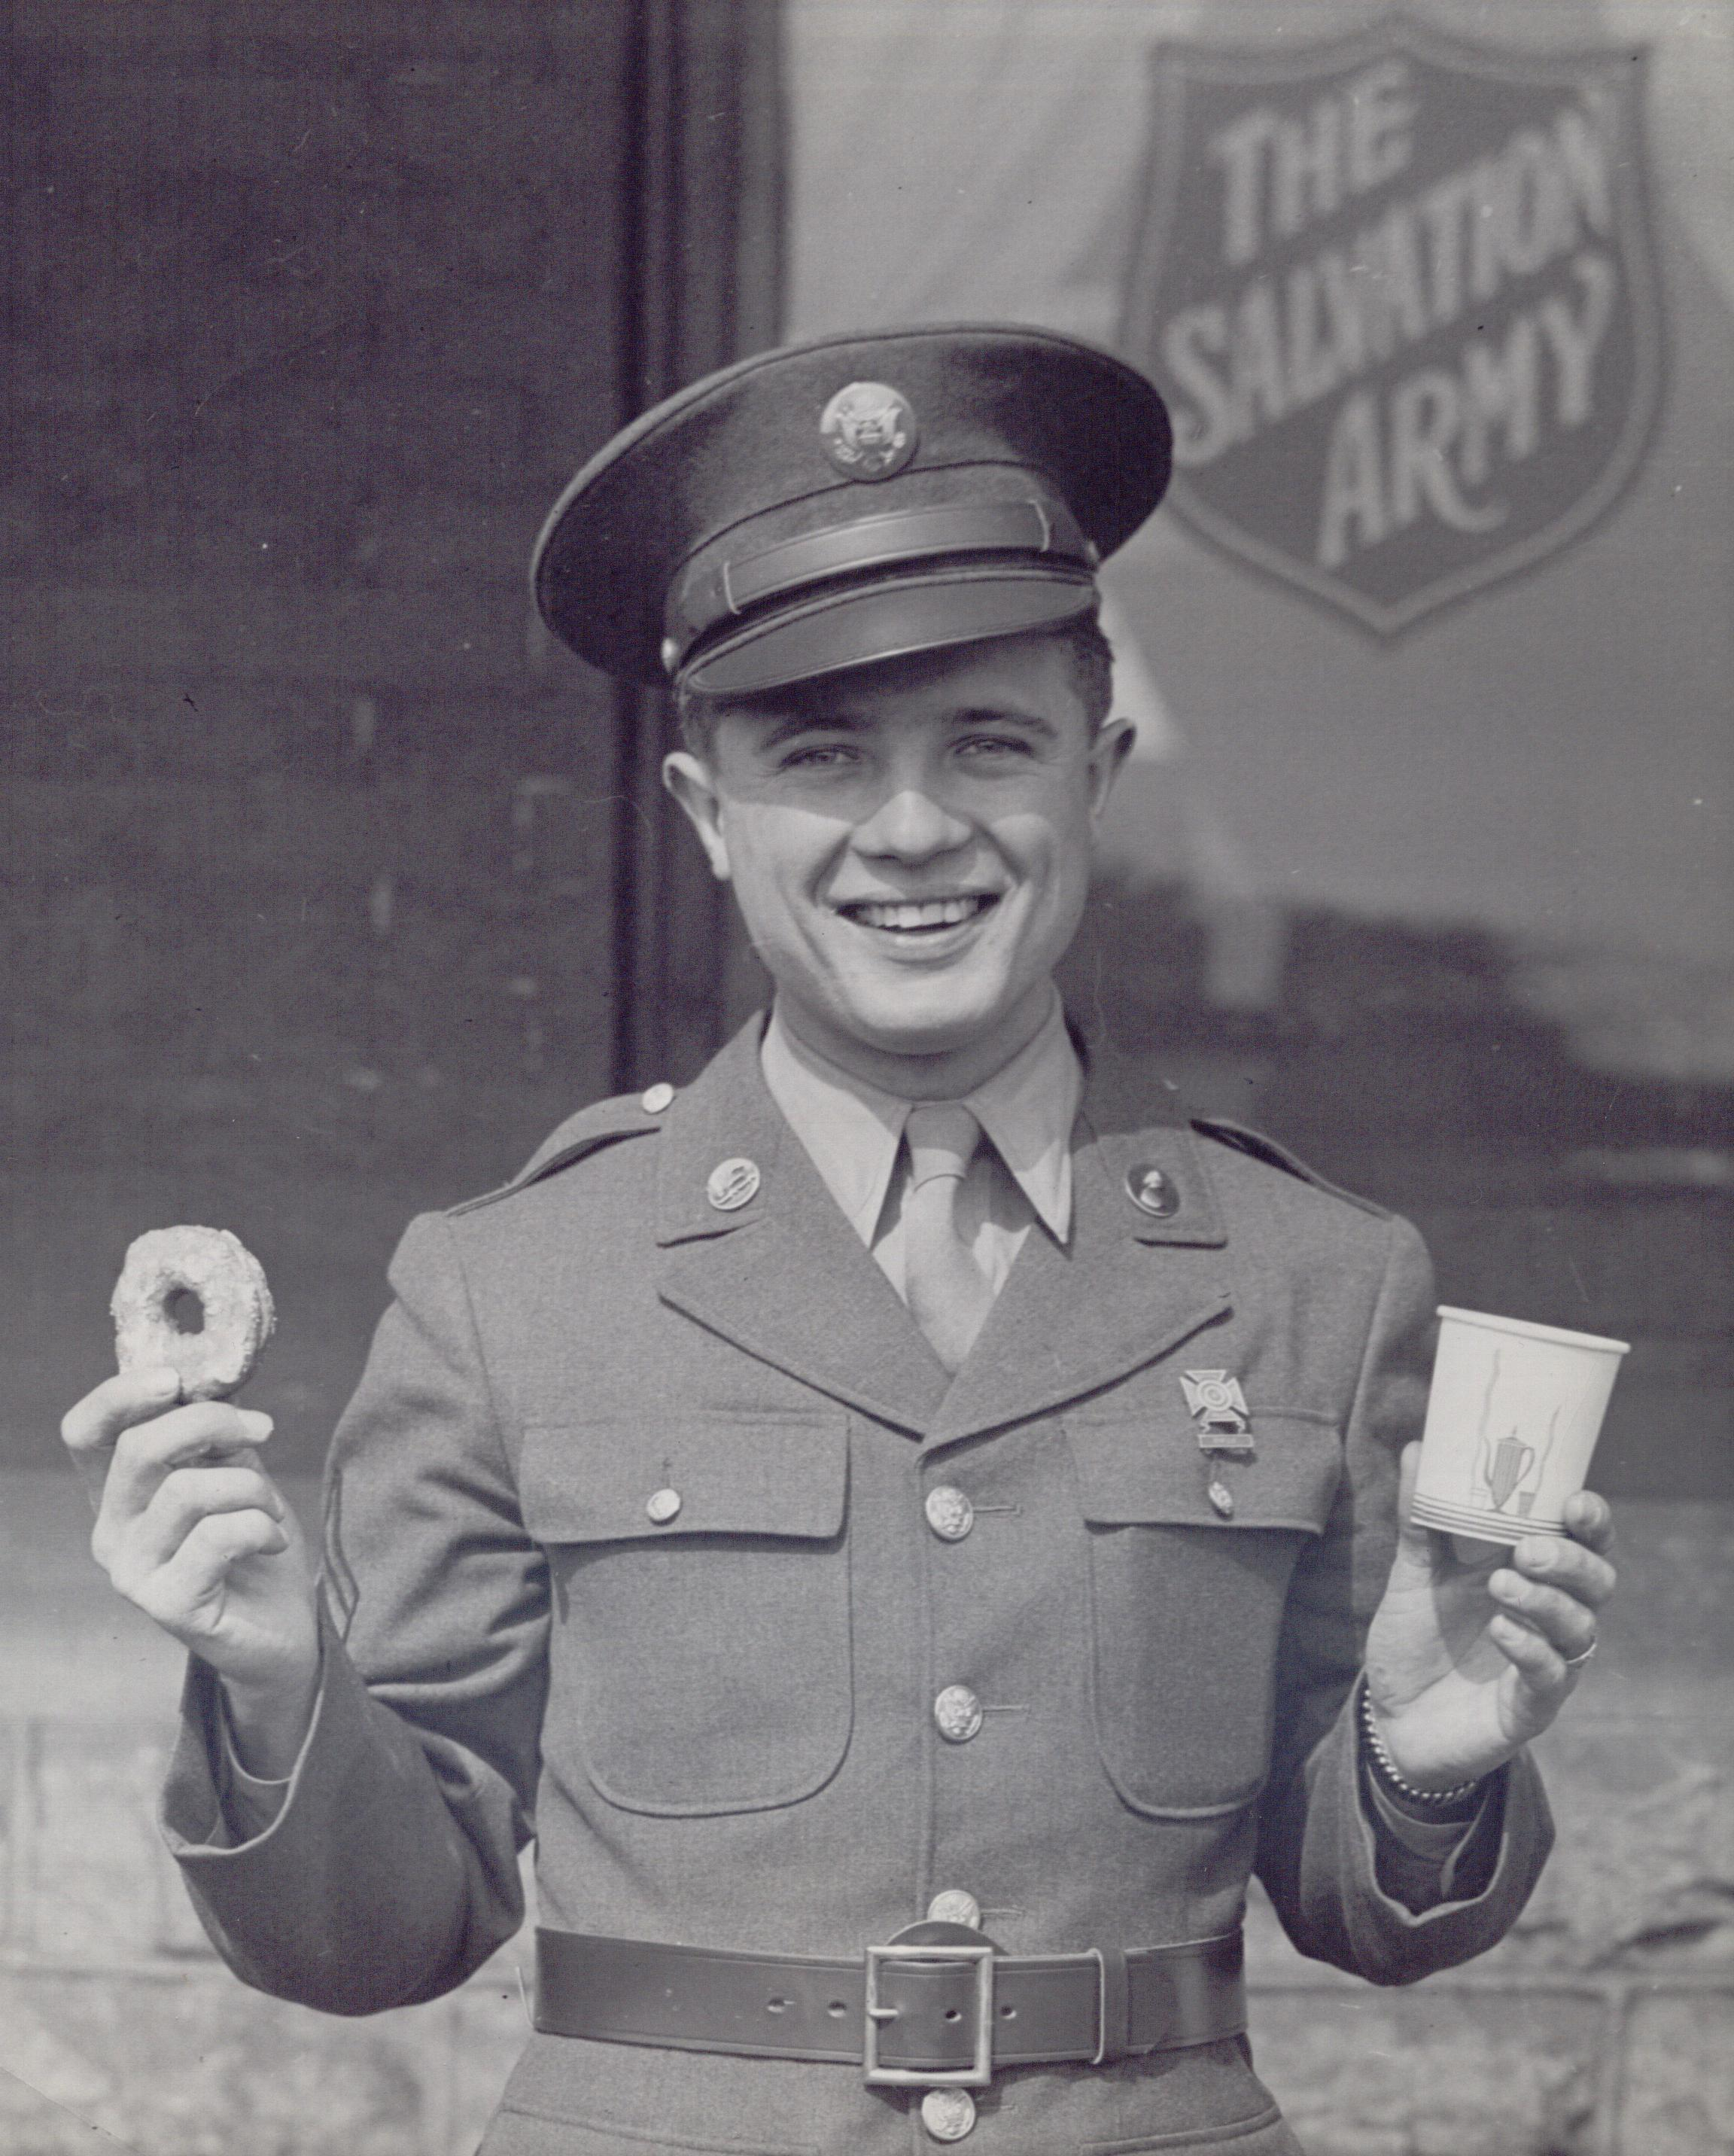 Dennison, OH Canteen - Serviceman Holding Donut and Coffee